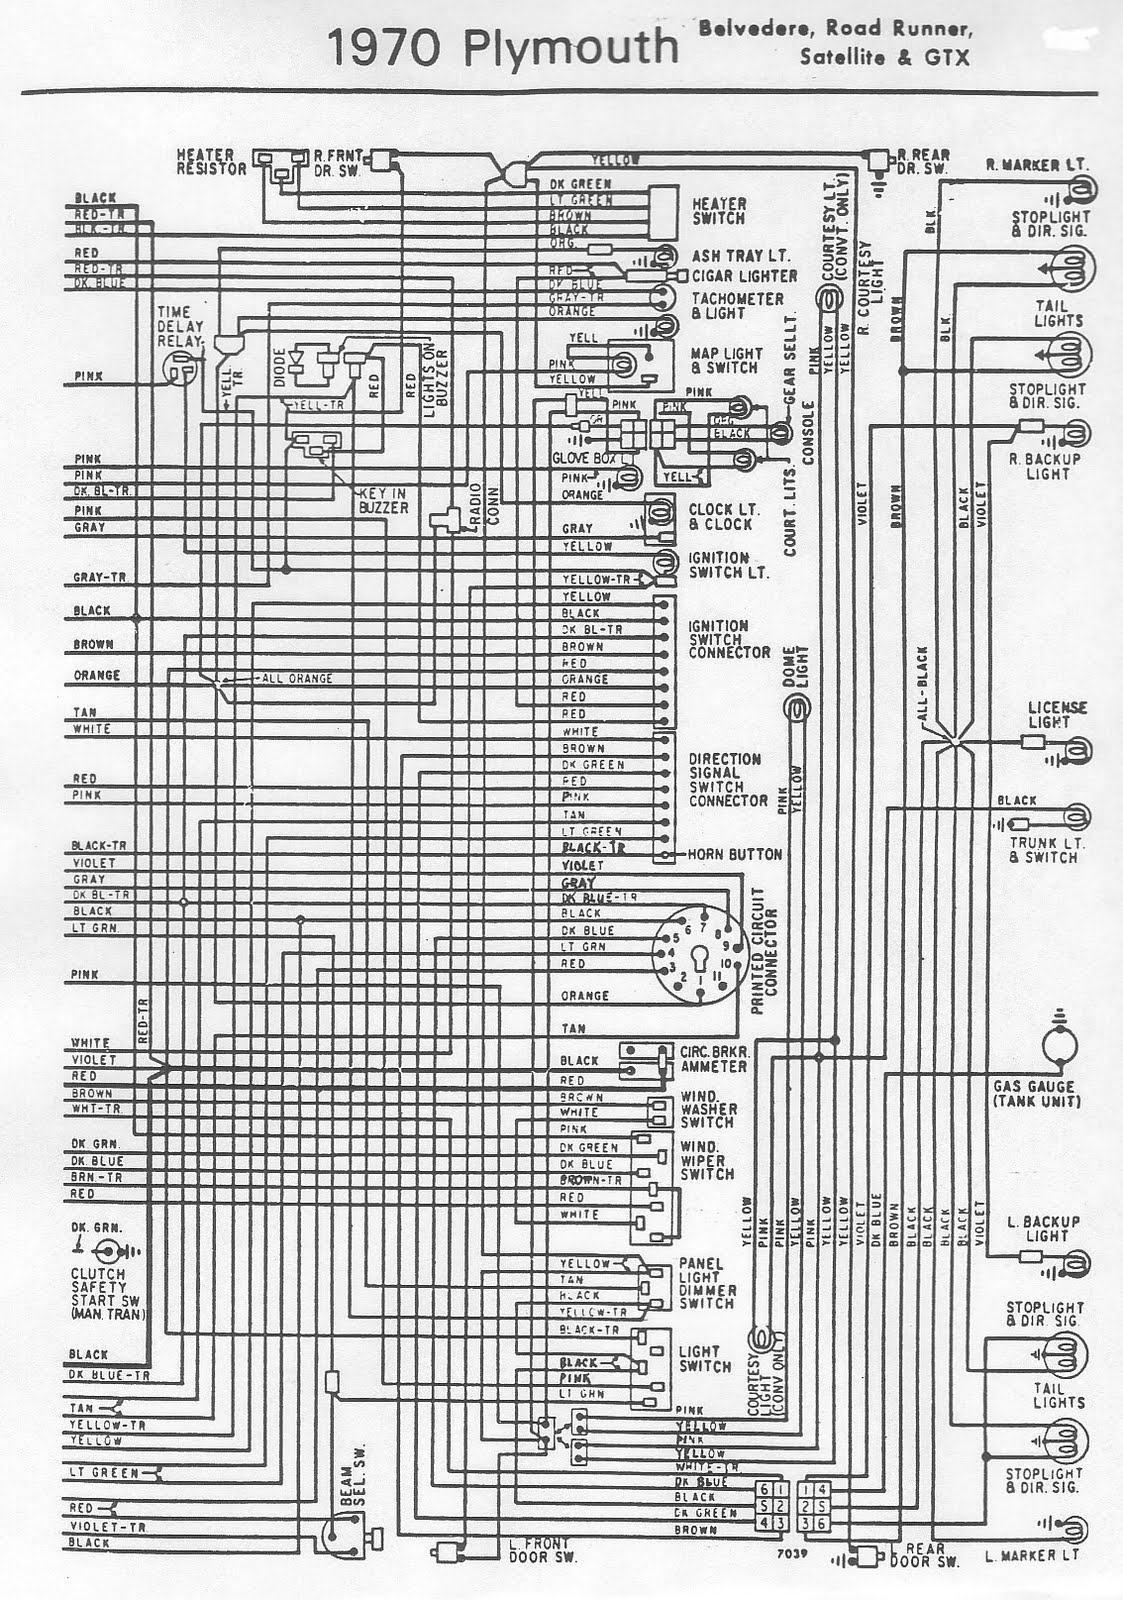 1970+Plymouth+Belvedere+GTX+Satellite+Road+Runner+Schematic1 70 cuda wiper wiring diagram wiring diagram data